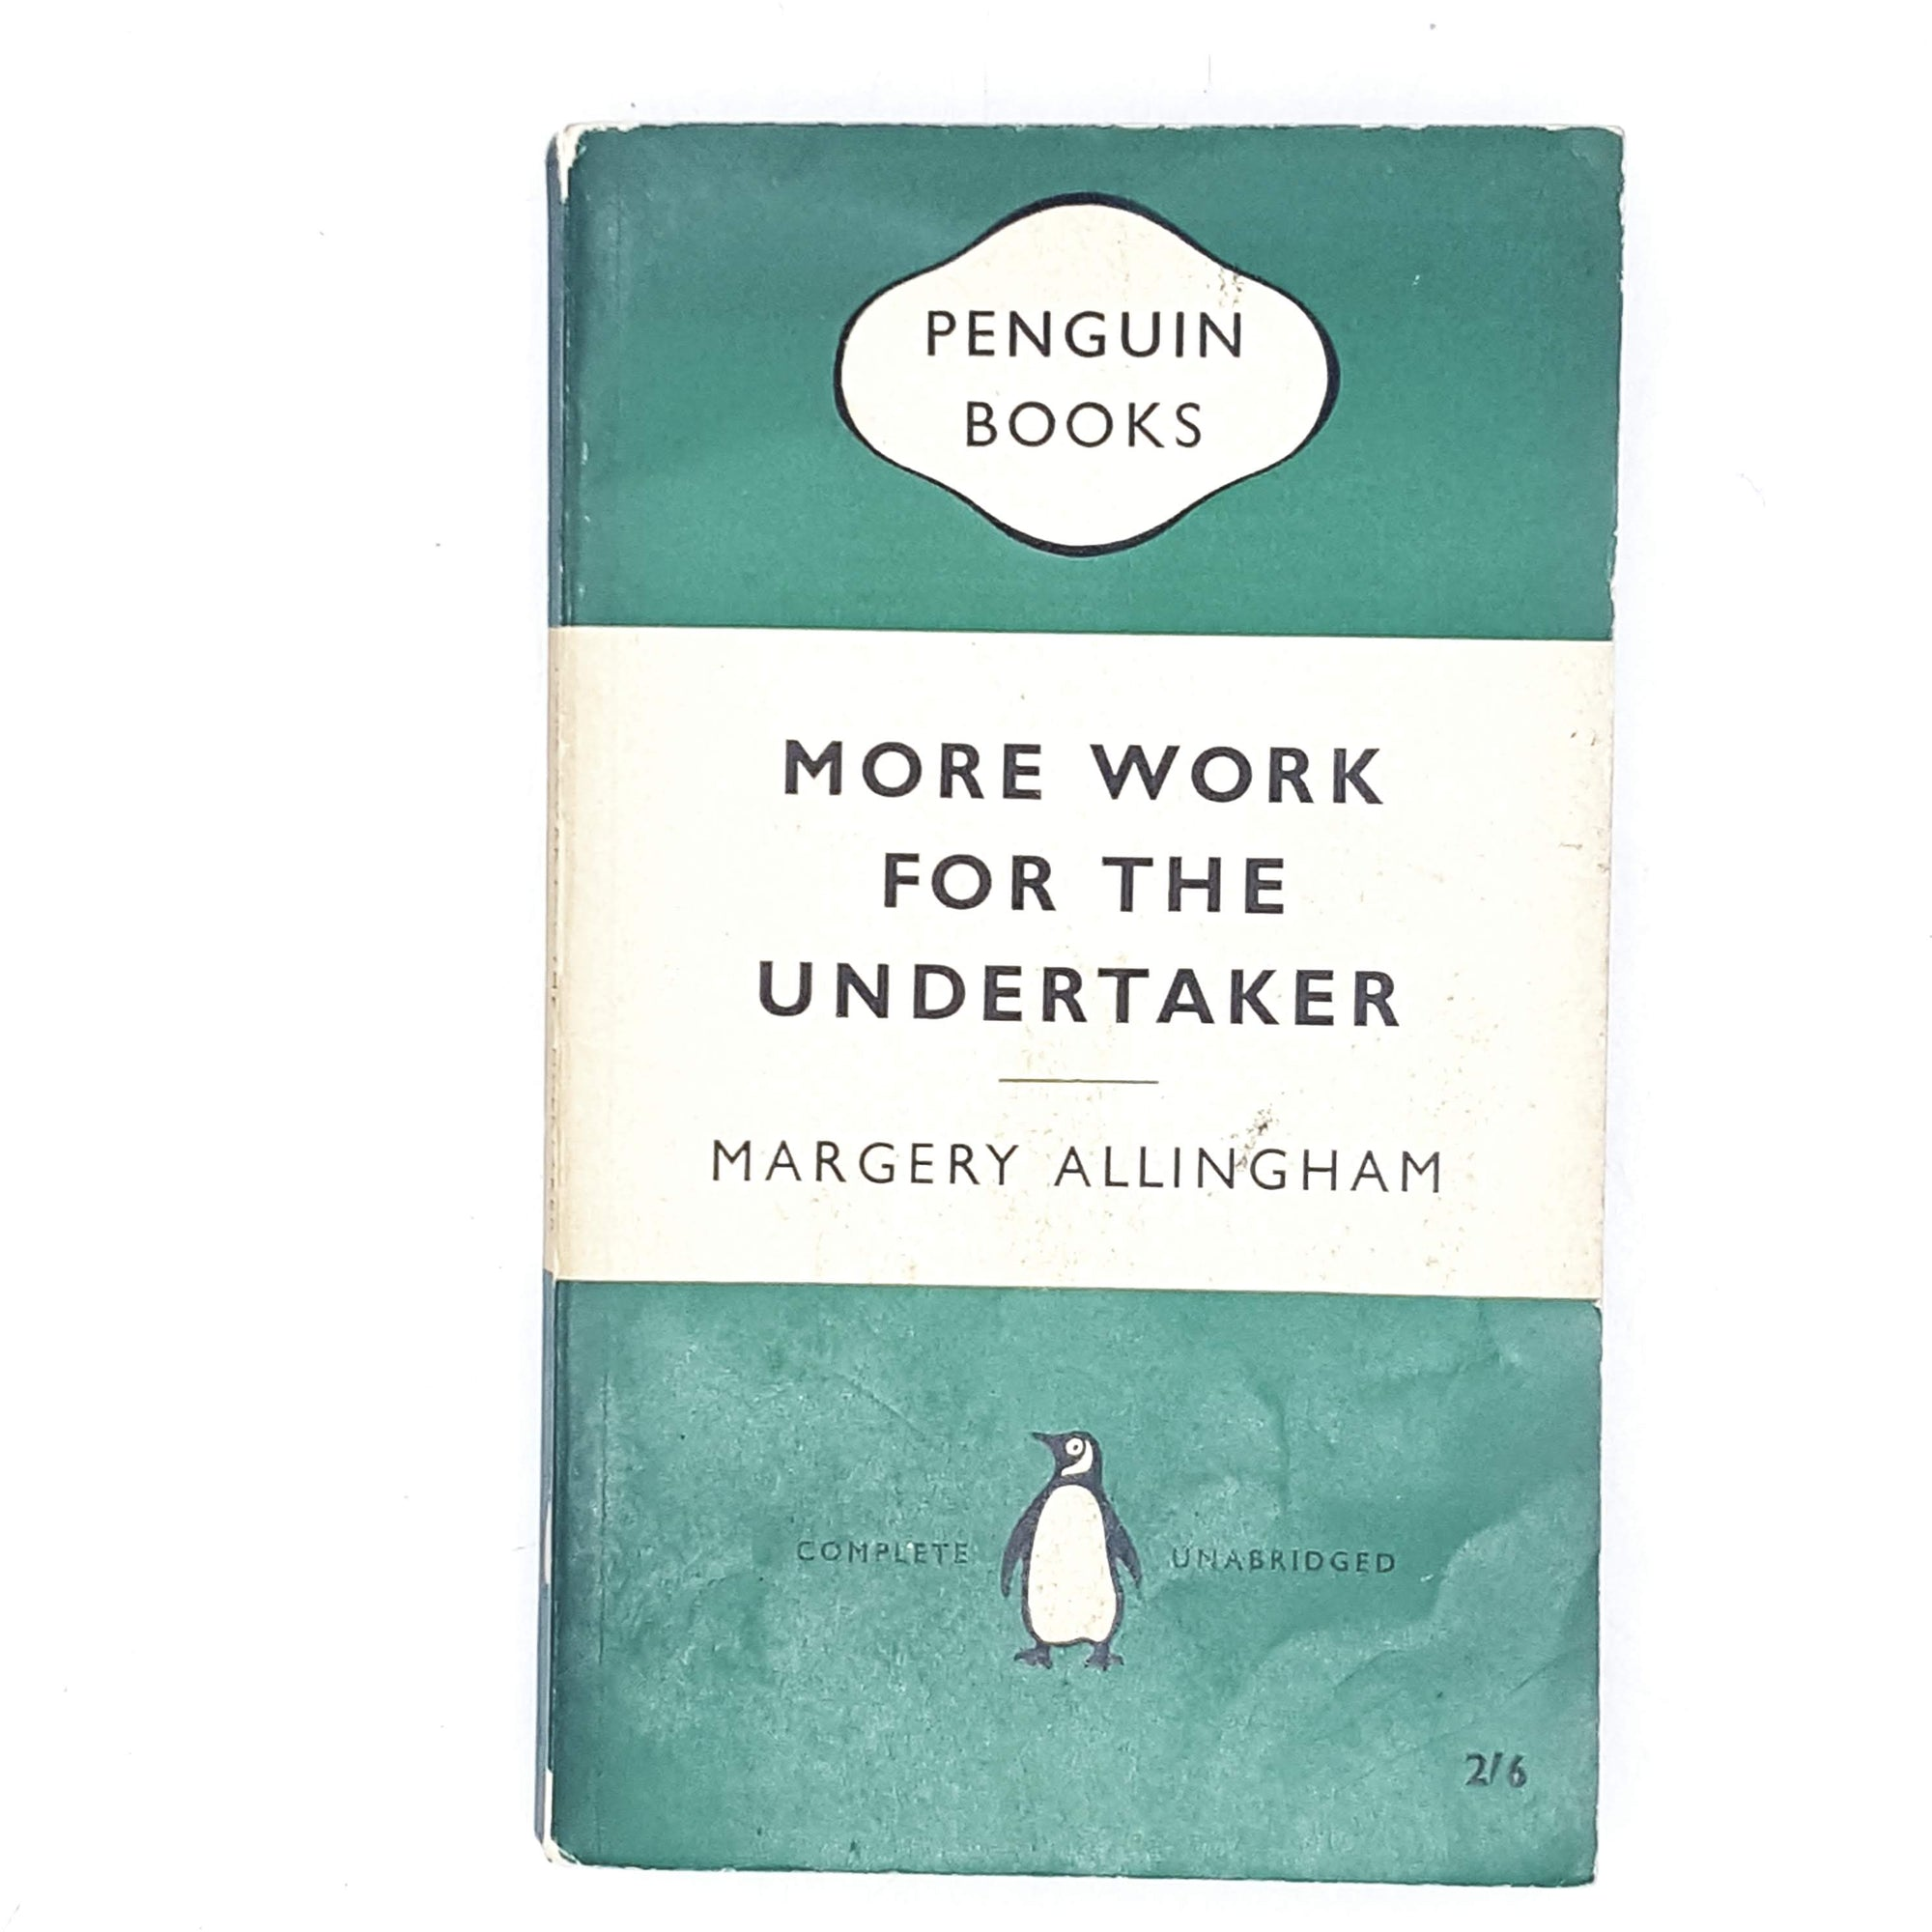 More Work for the Undertaker by Margery Allingham 1959